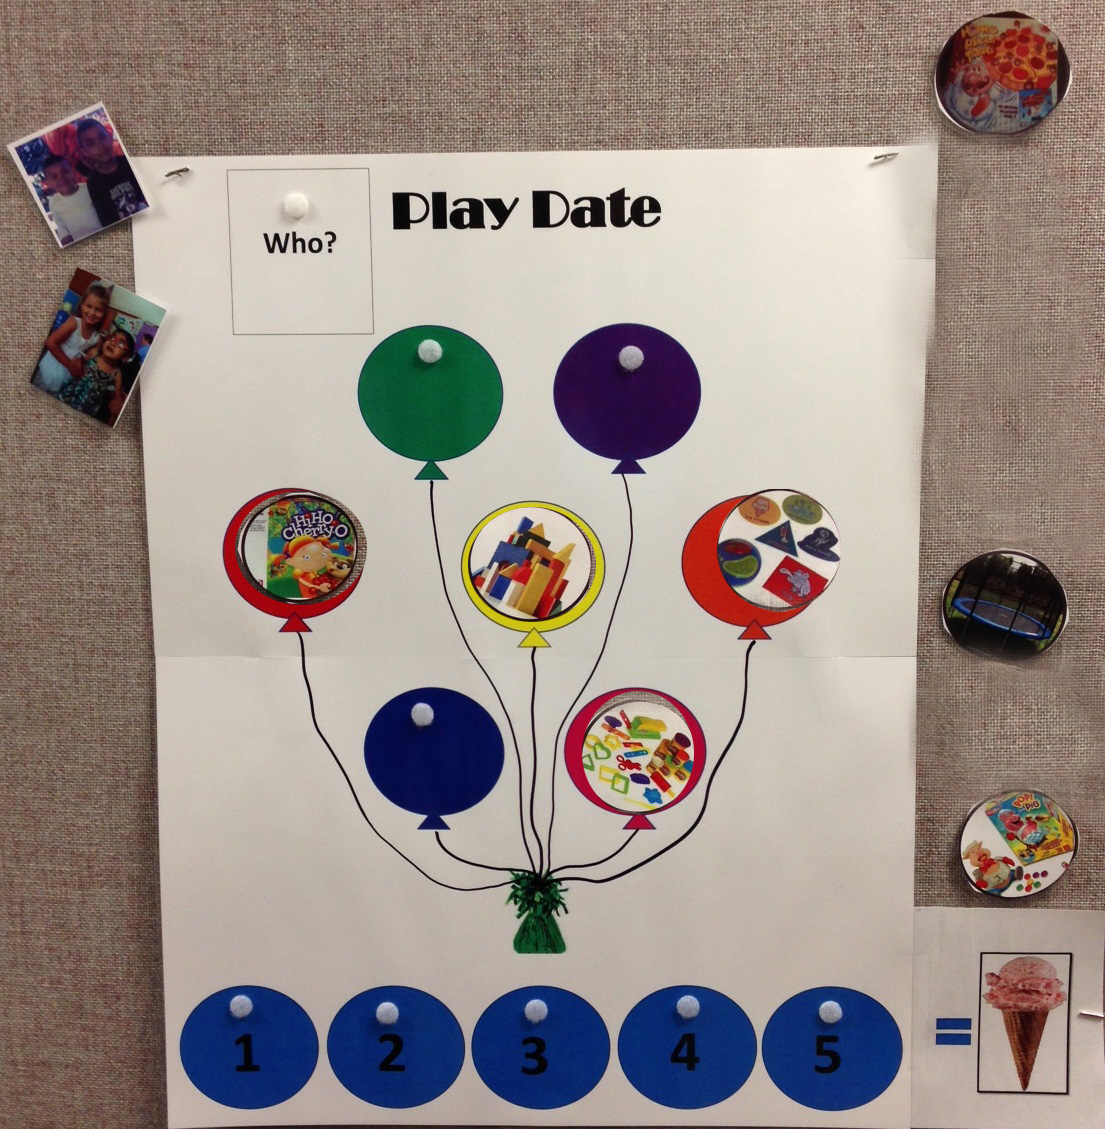 poster of play date visual with balloons in the middle. In each balloon is a picture of a play date activity such as blocks. The pictures are velcroed in each balloon. Along the bottom are circles numbered 1 through 5.